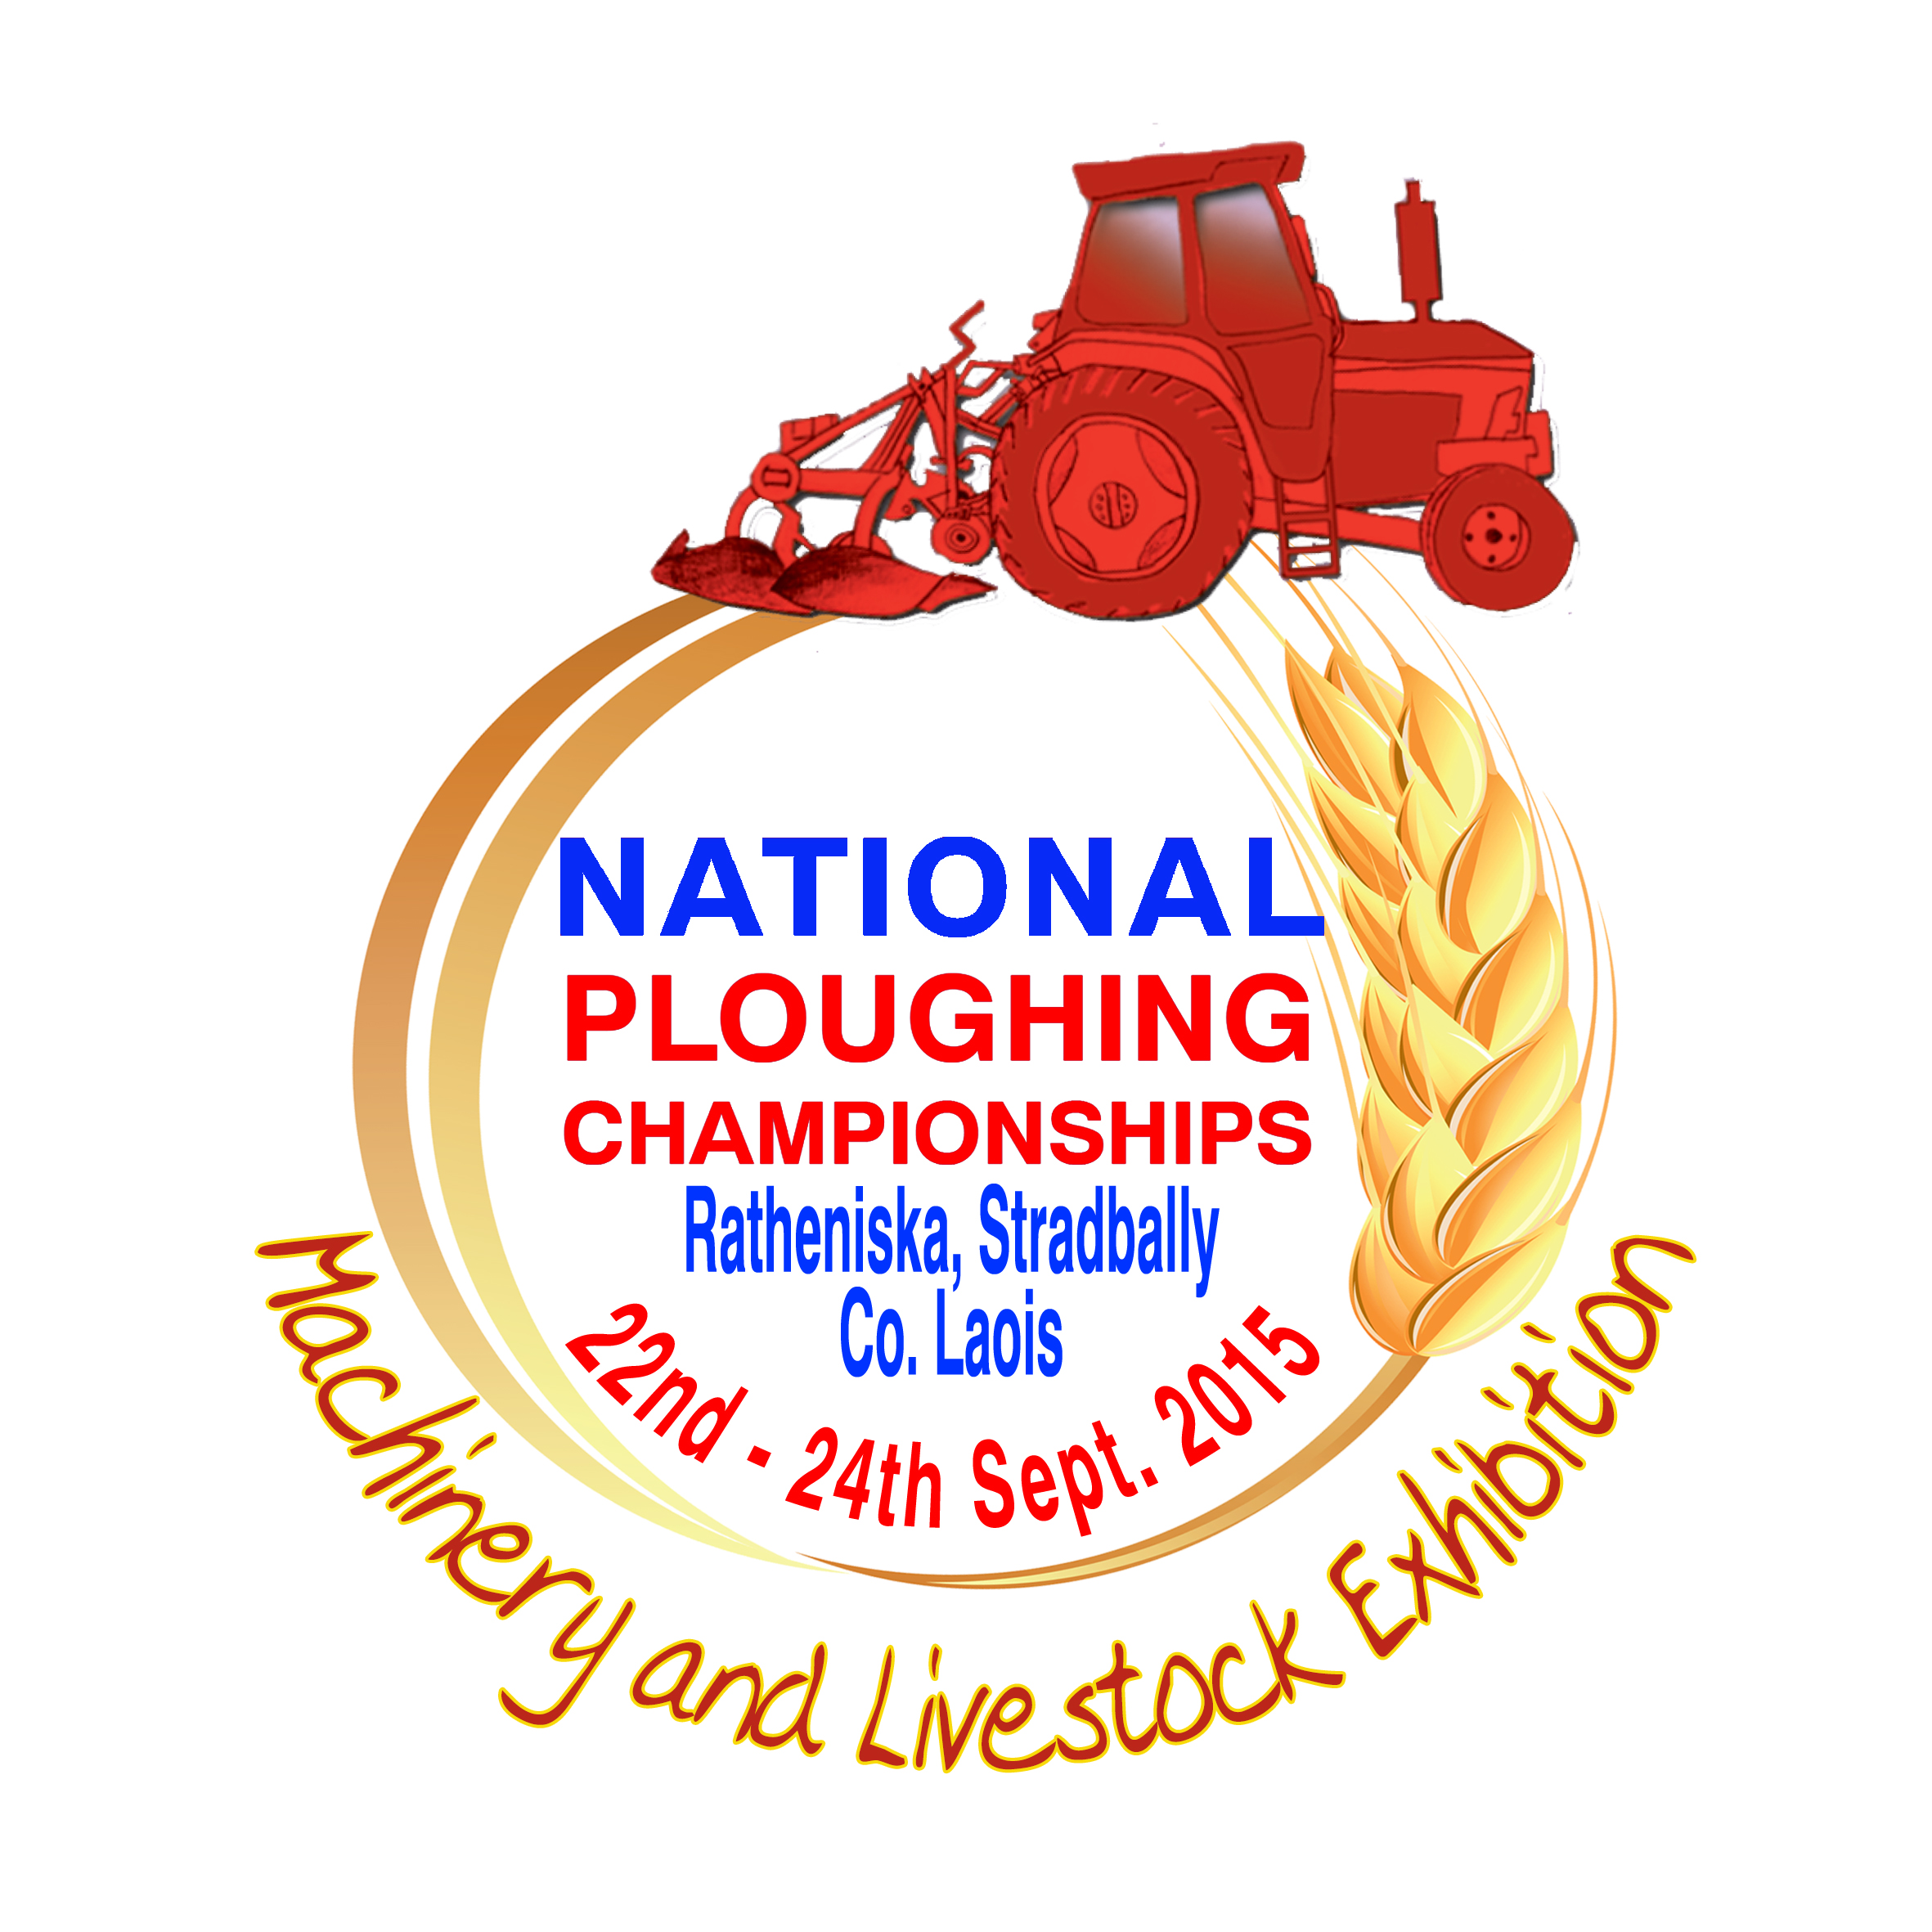 National Ploughing Championships Guerin Media Ltd